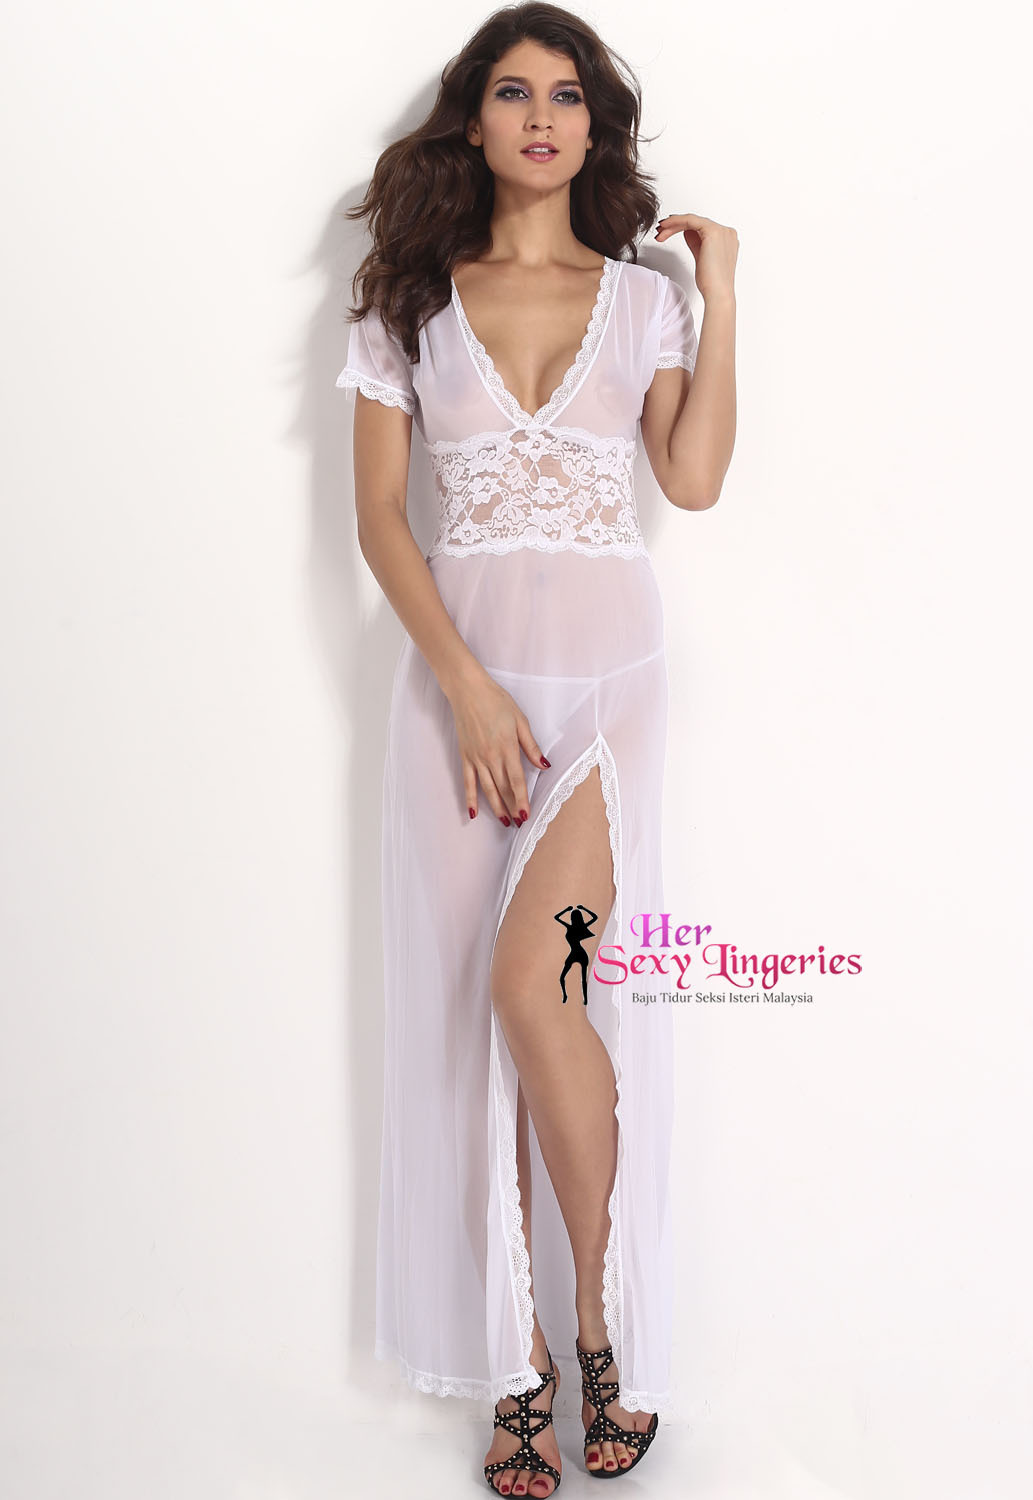 AB030WH Deep V Lace Long Dress Nightwear Lingeries Sexy. (White) 1c.jpg